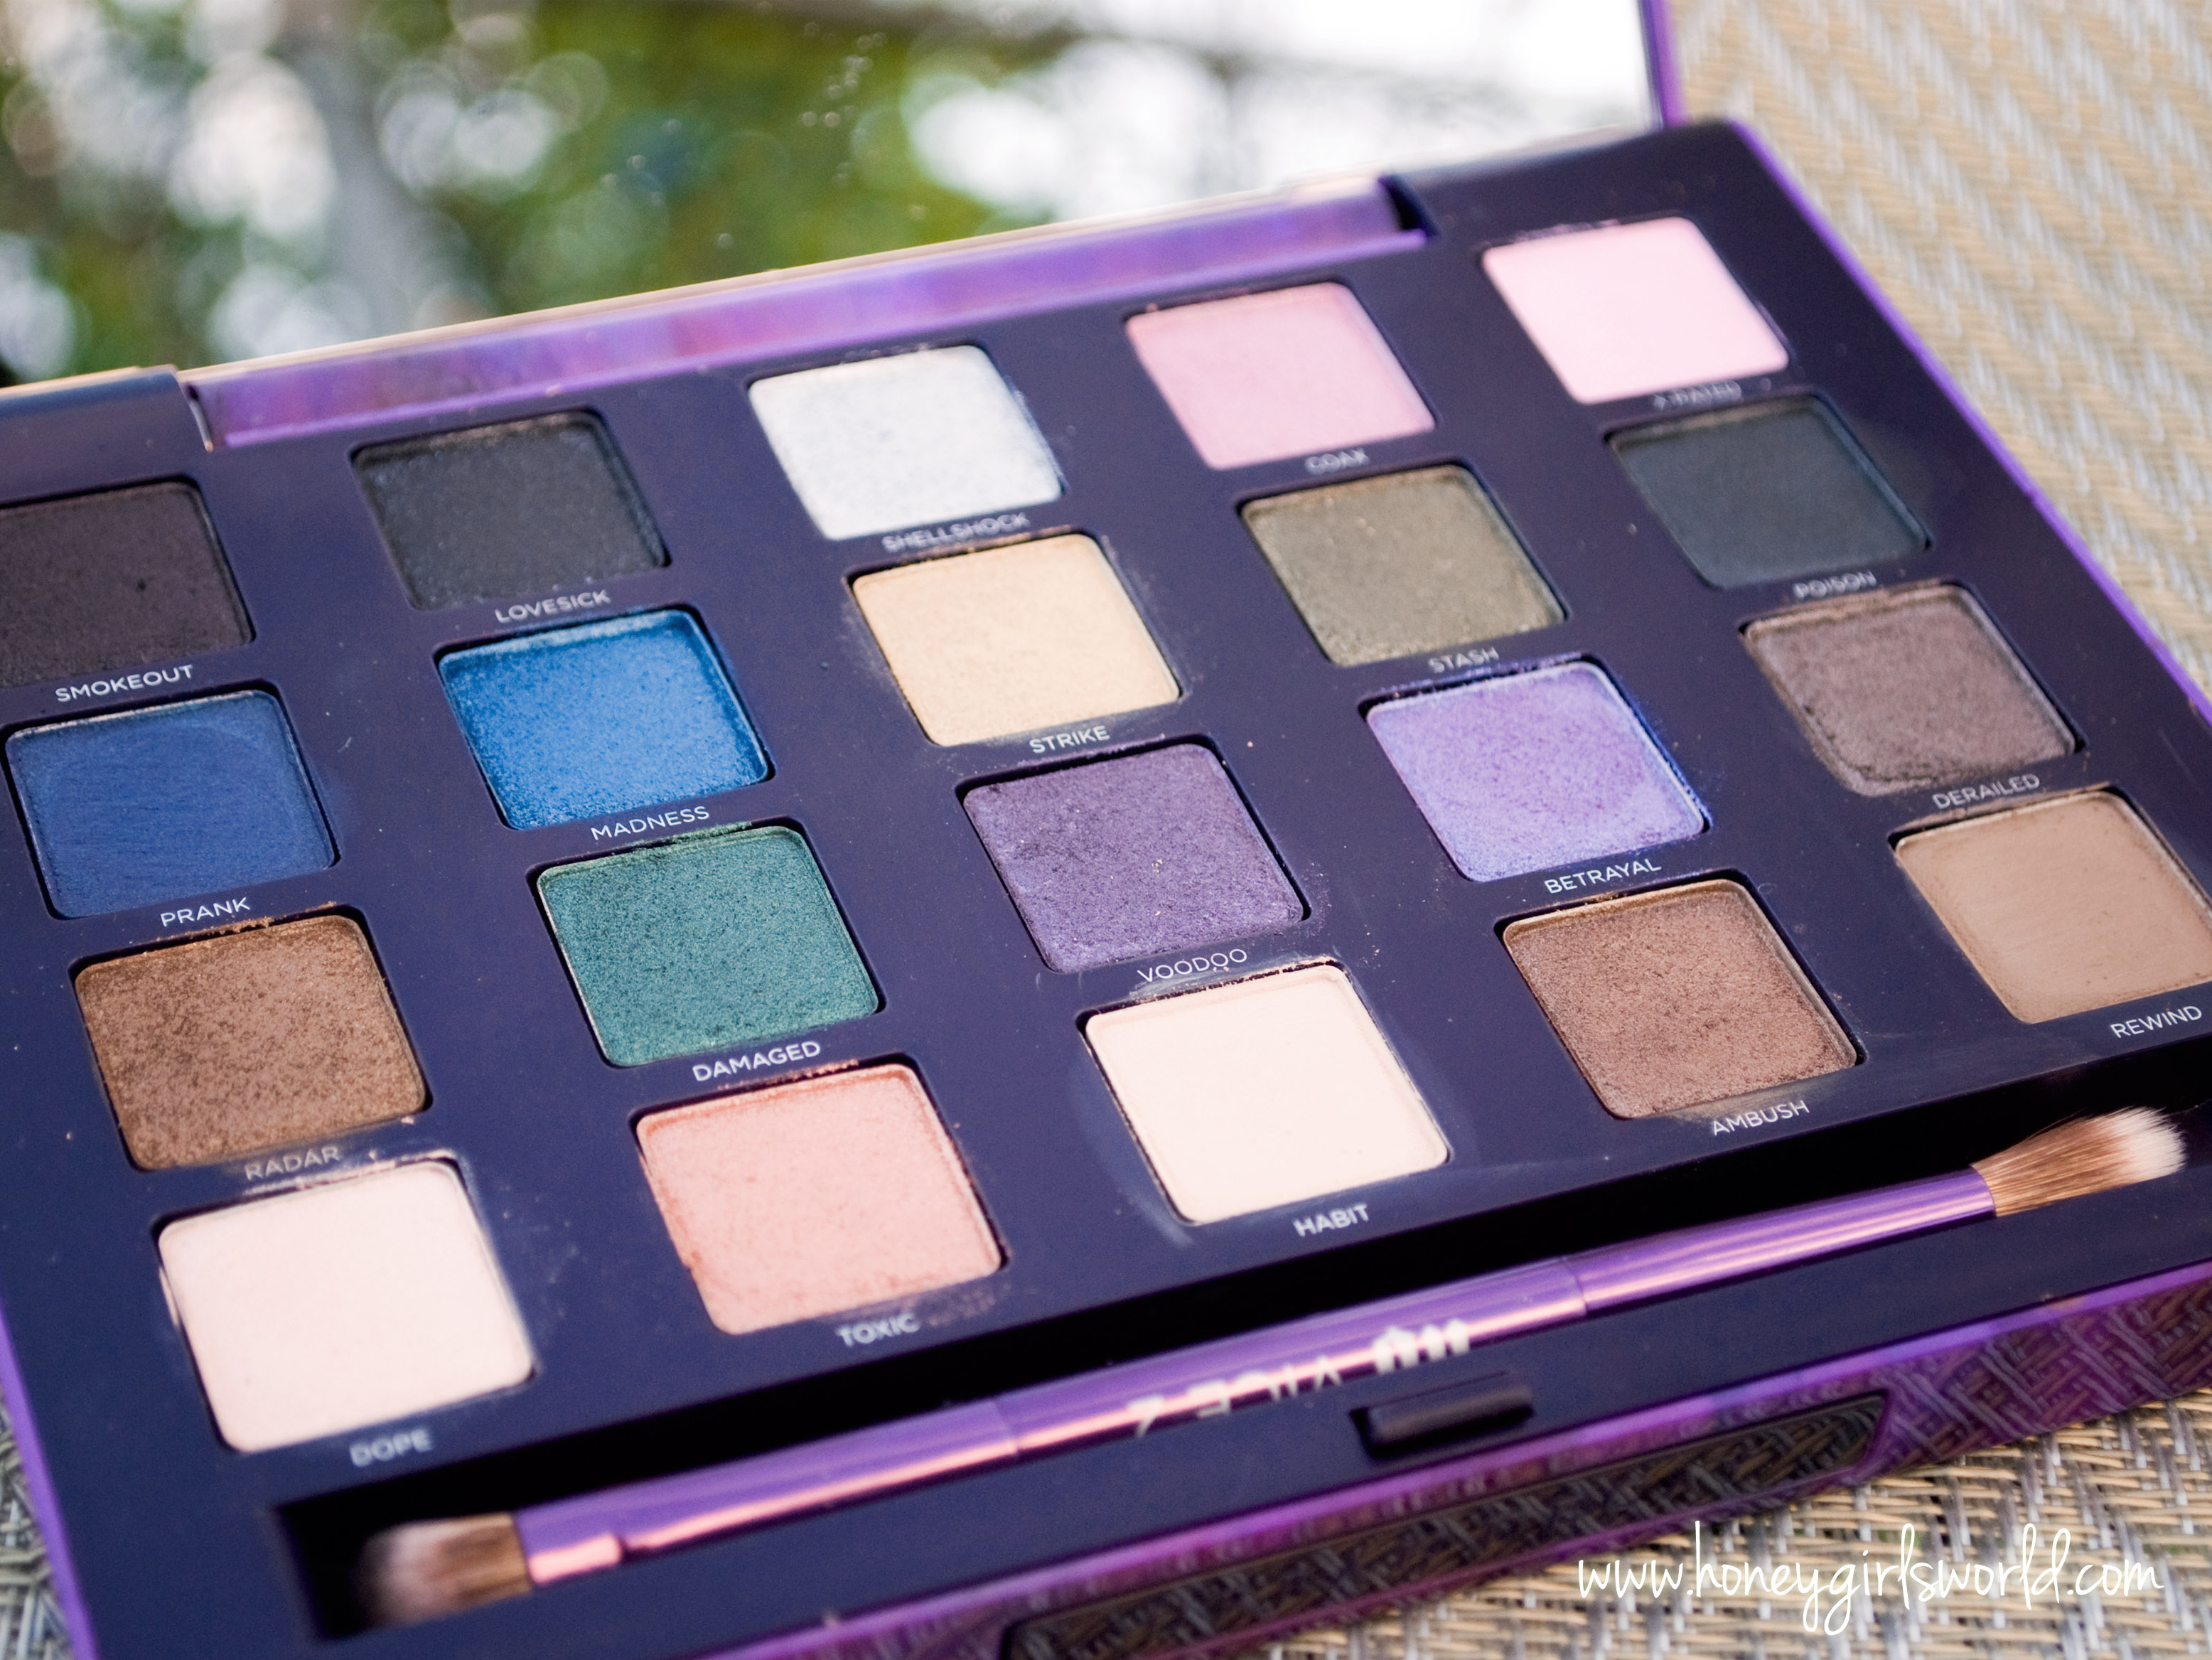 Kat Stays Polished | Beauty Blog with a Dash of Life ... |Urban Decay Palette 2